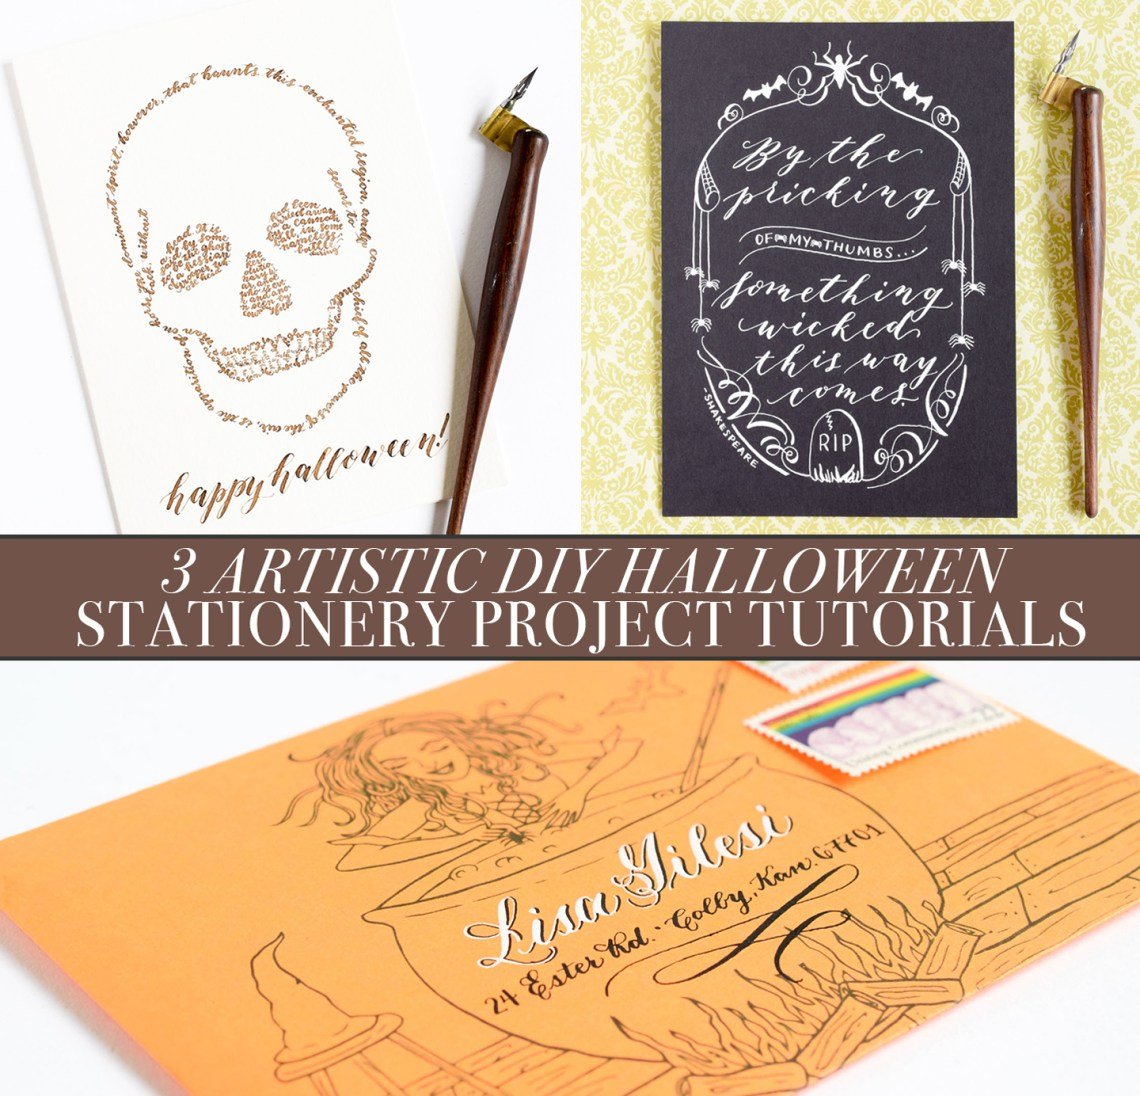 3 Artistic DIY Halloween Stationery Projects   The Postman's Knock